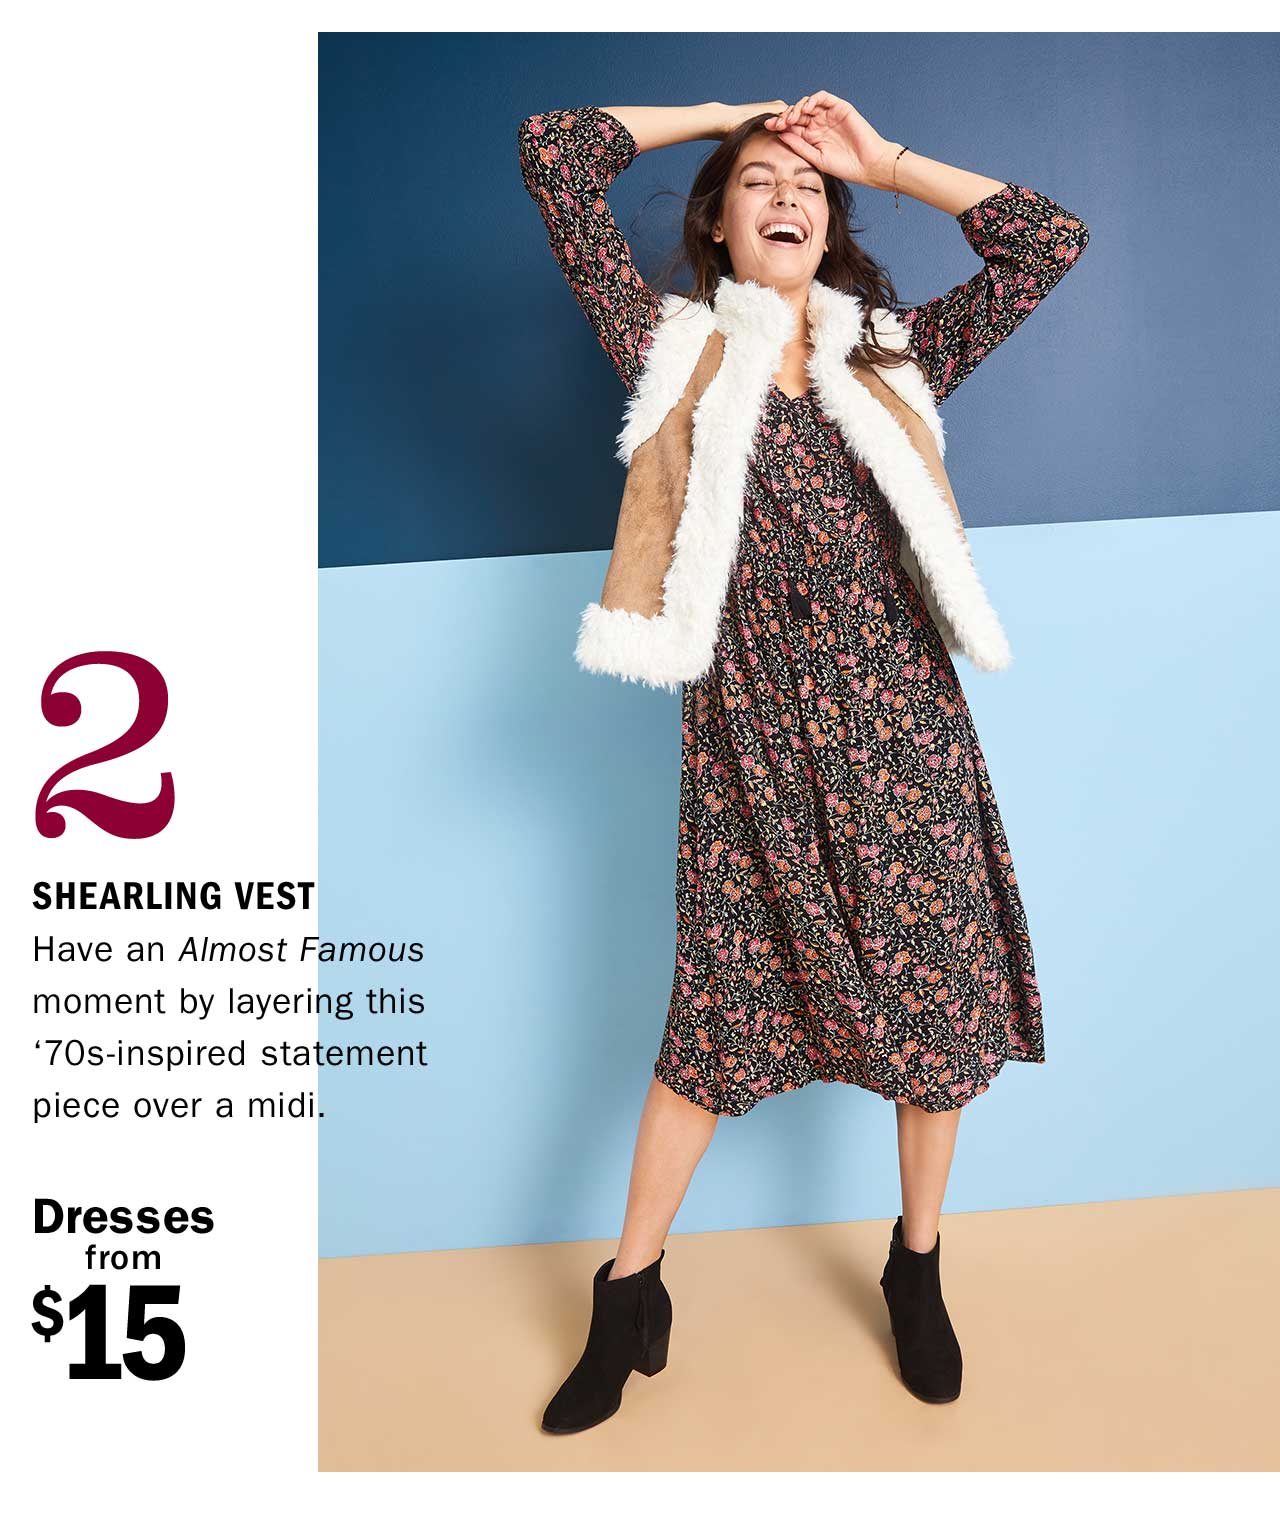 2 SHEARLING VEST | Dresses from $15